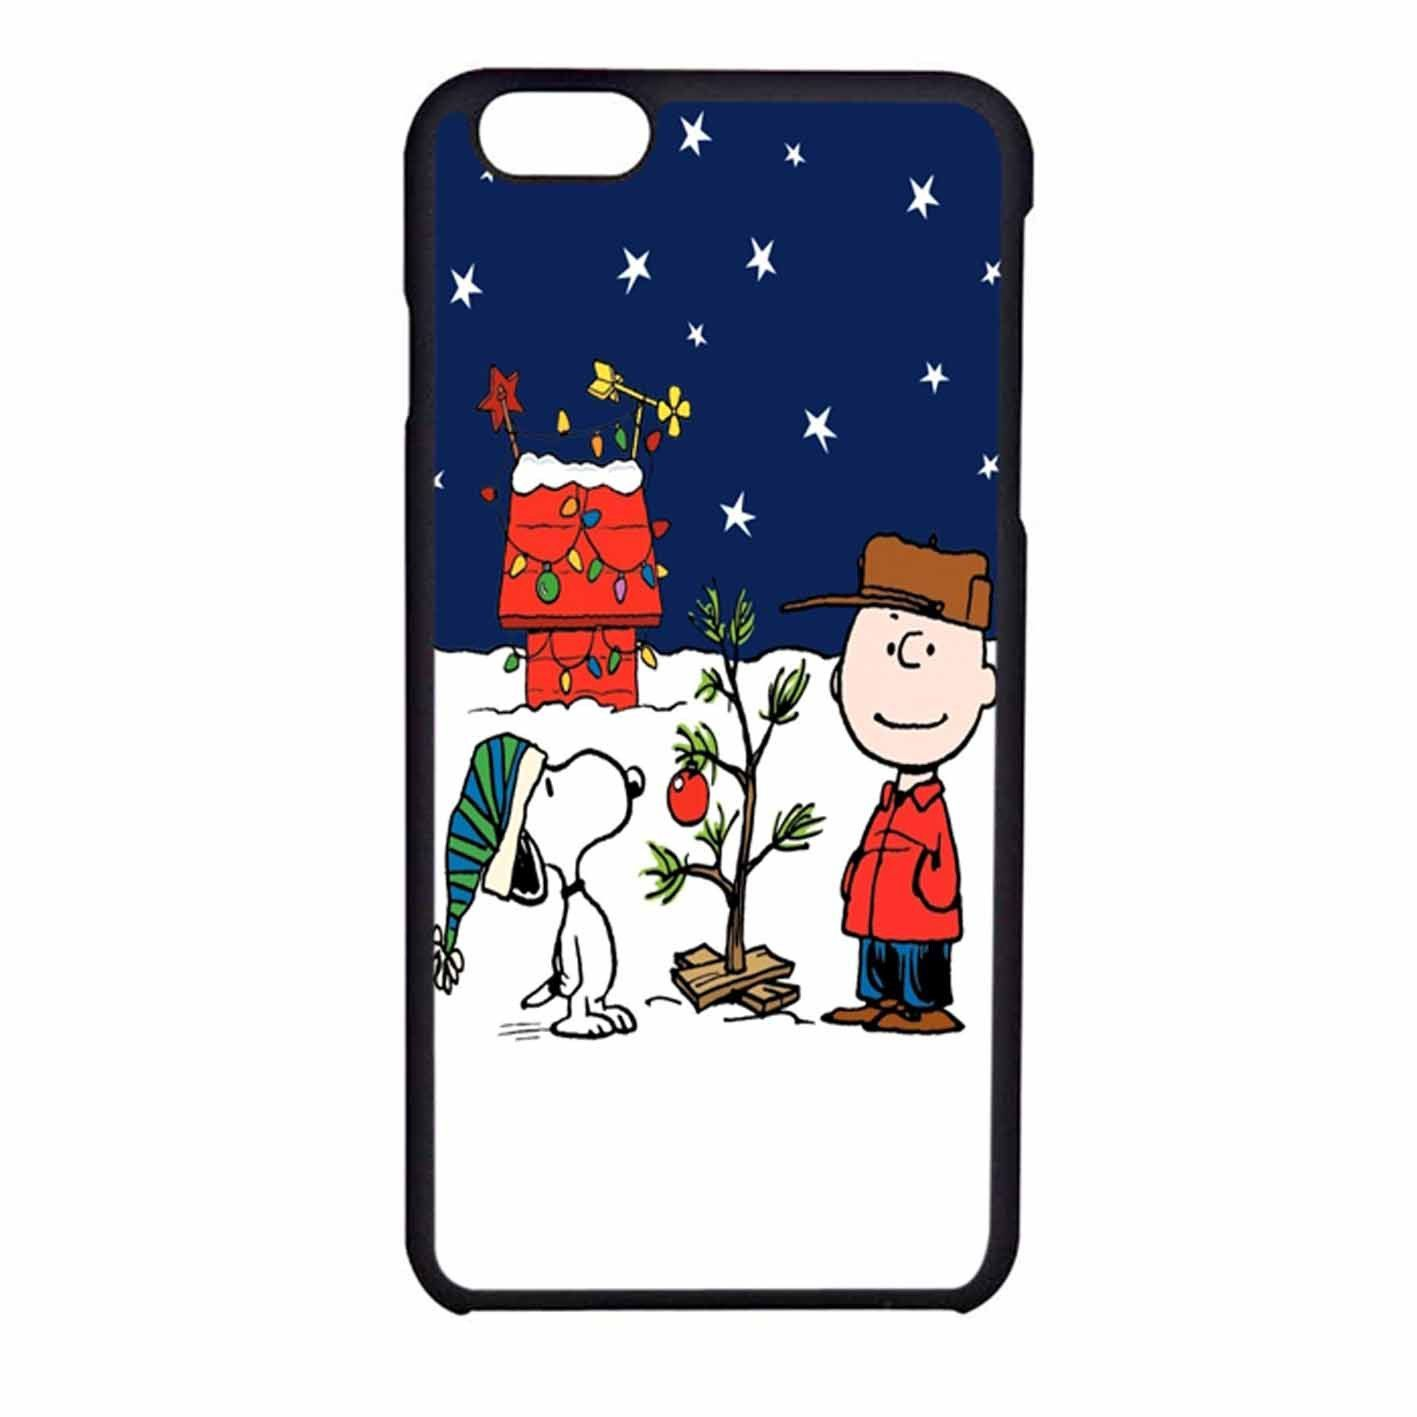 A Charlie Brown Christmas 2 iphone case